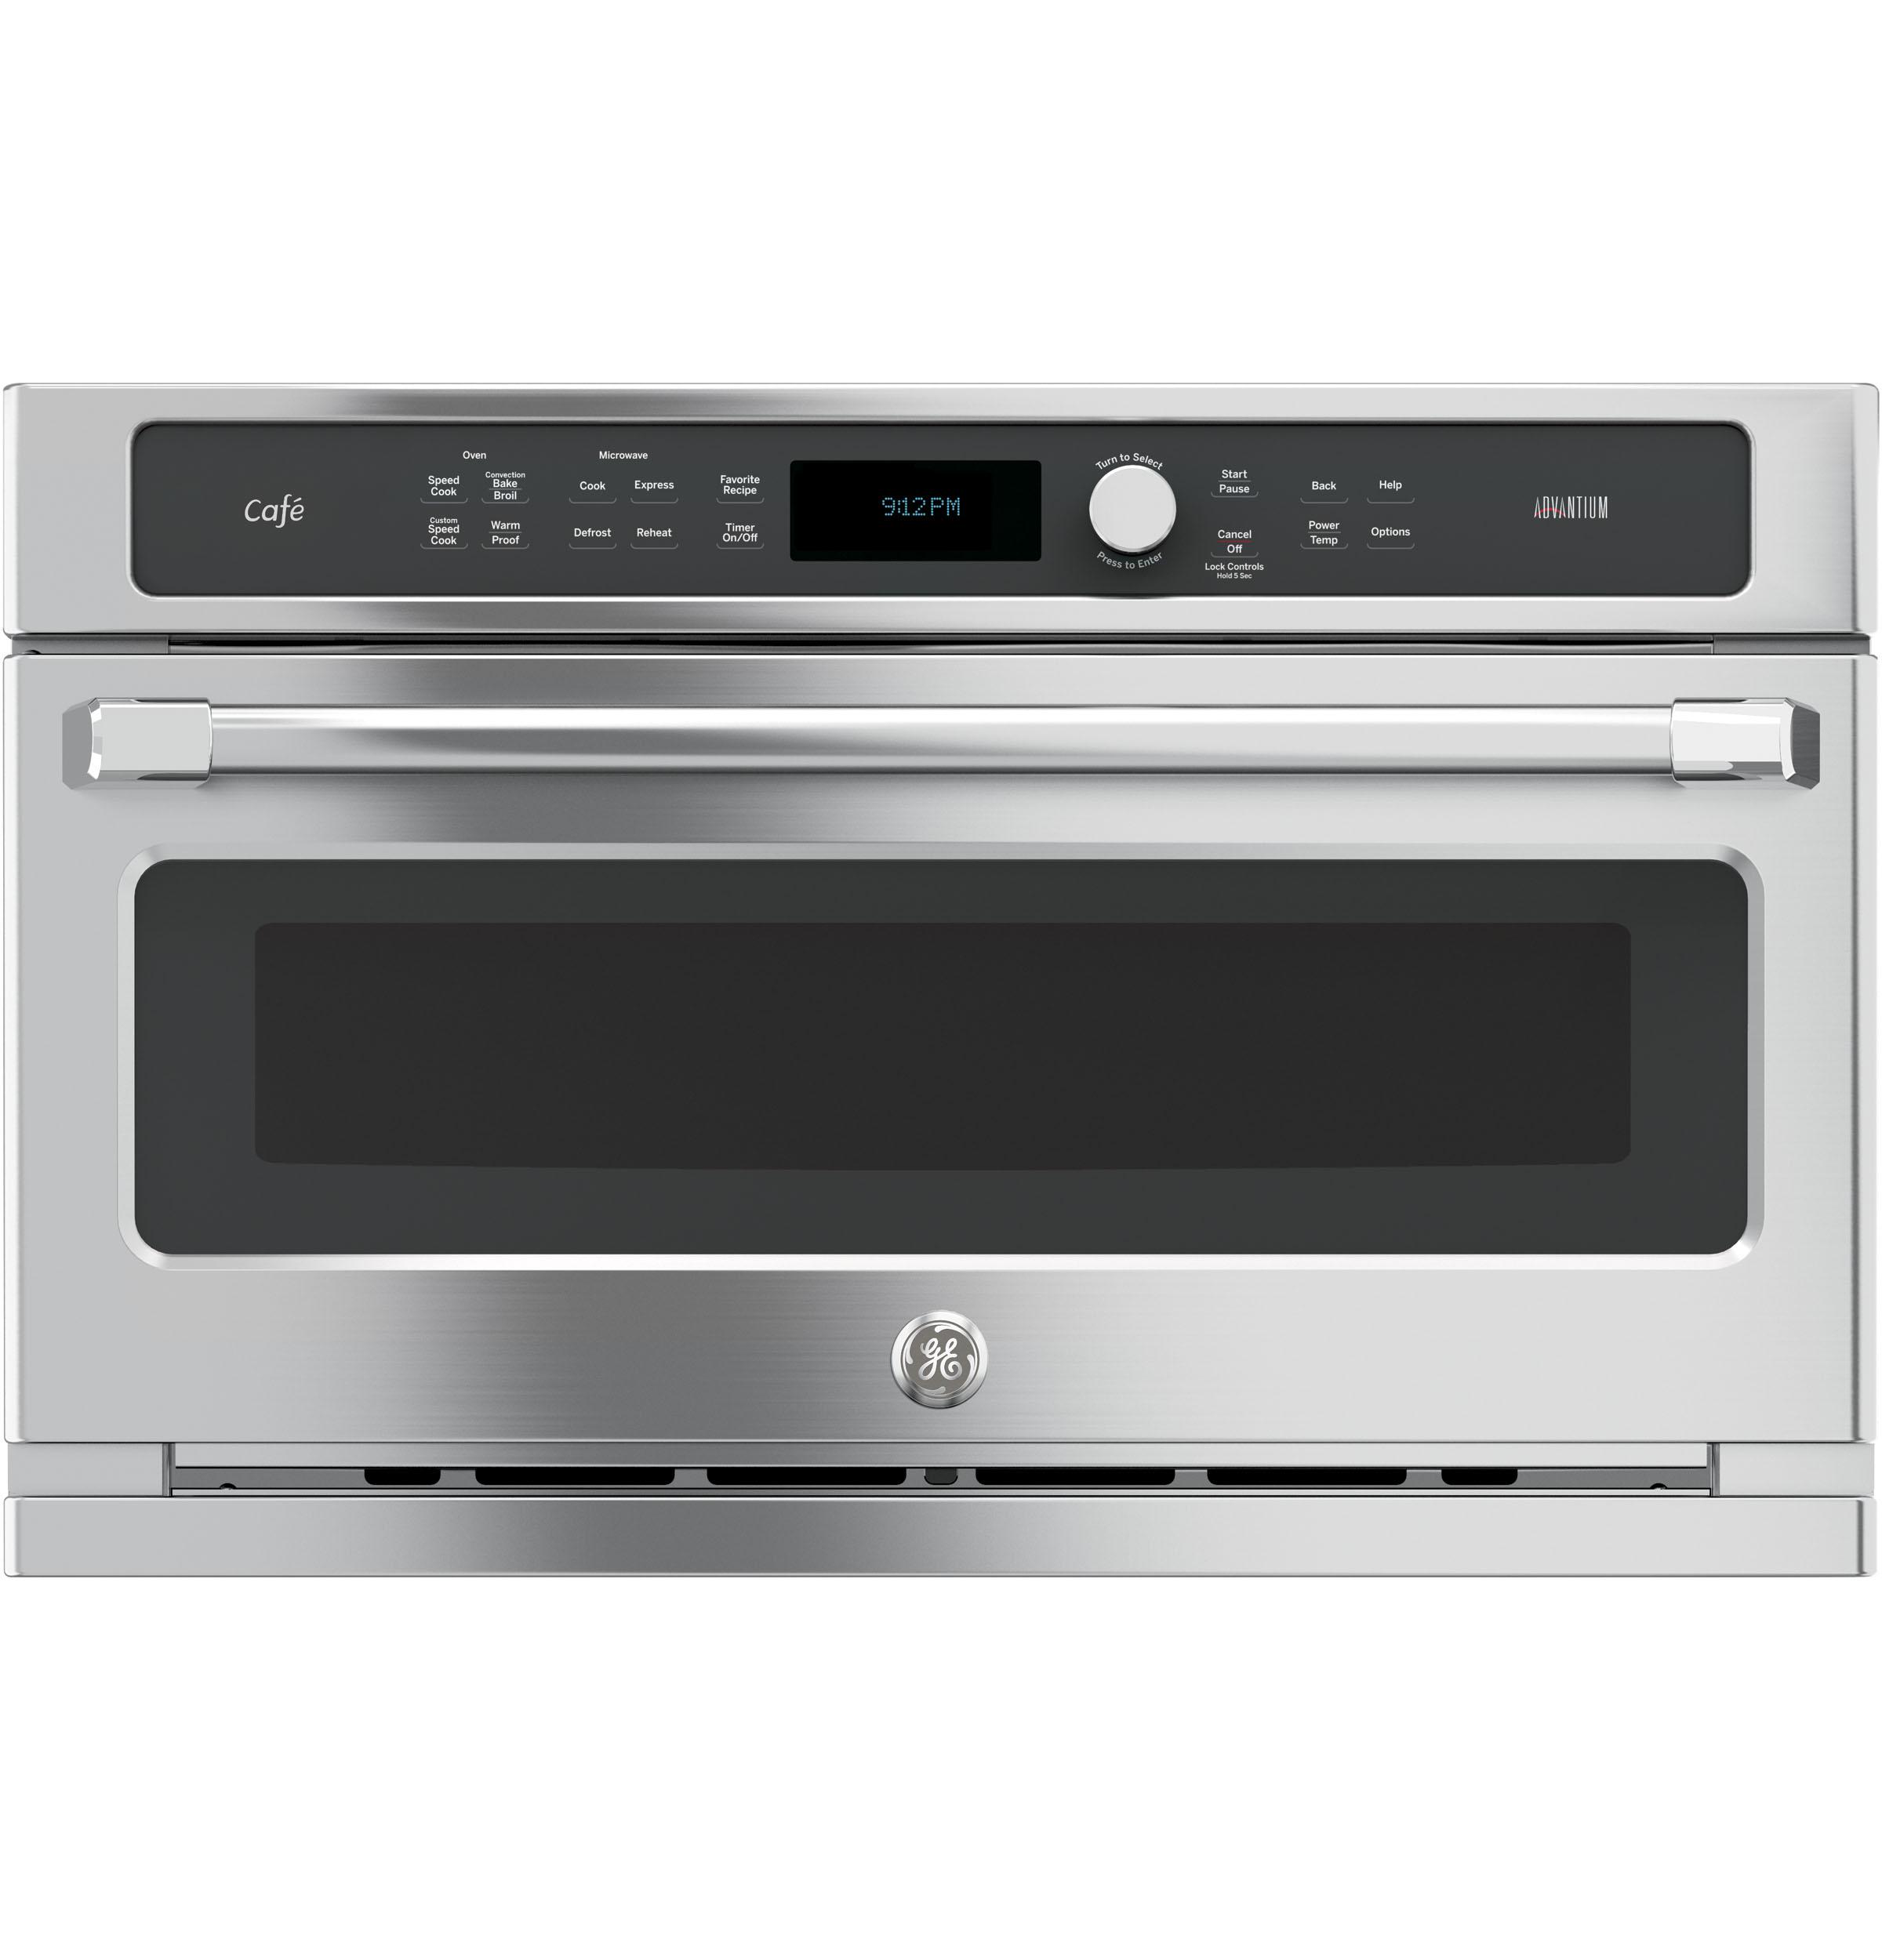 GE Cafe(TM) Series 30 in. Single Wall Oven with Advantium(R) Technology